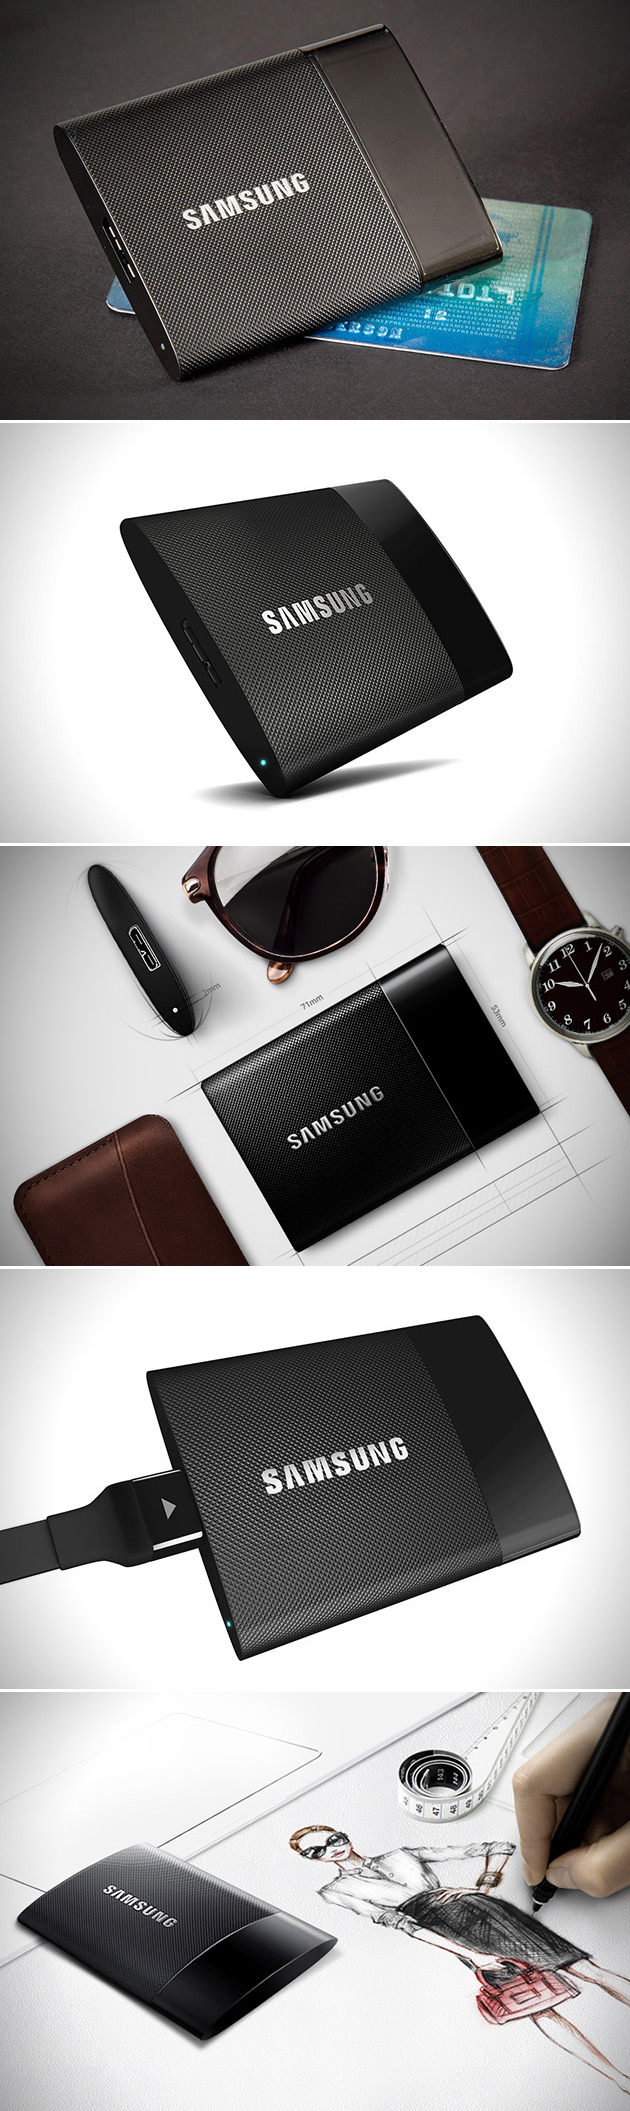 Samsung Portable SSD T1